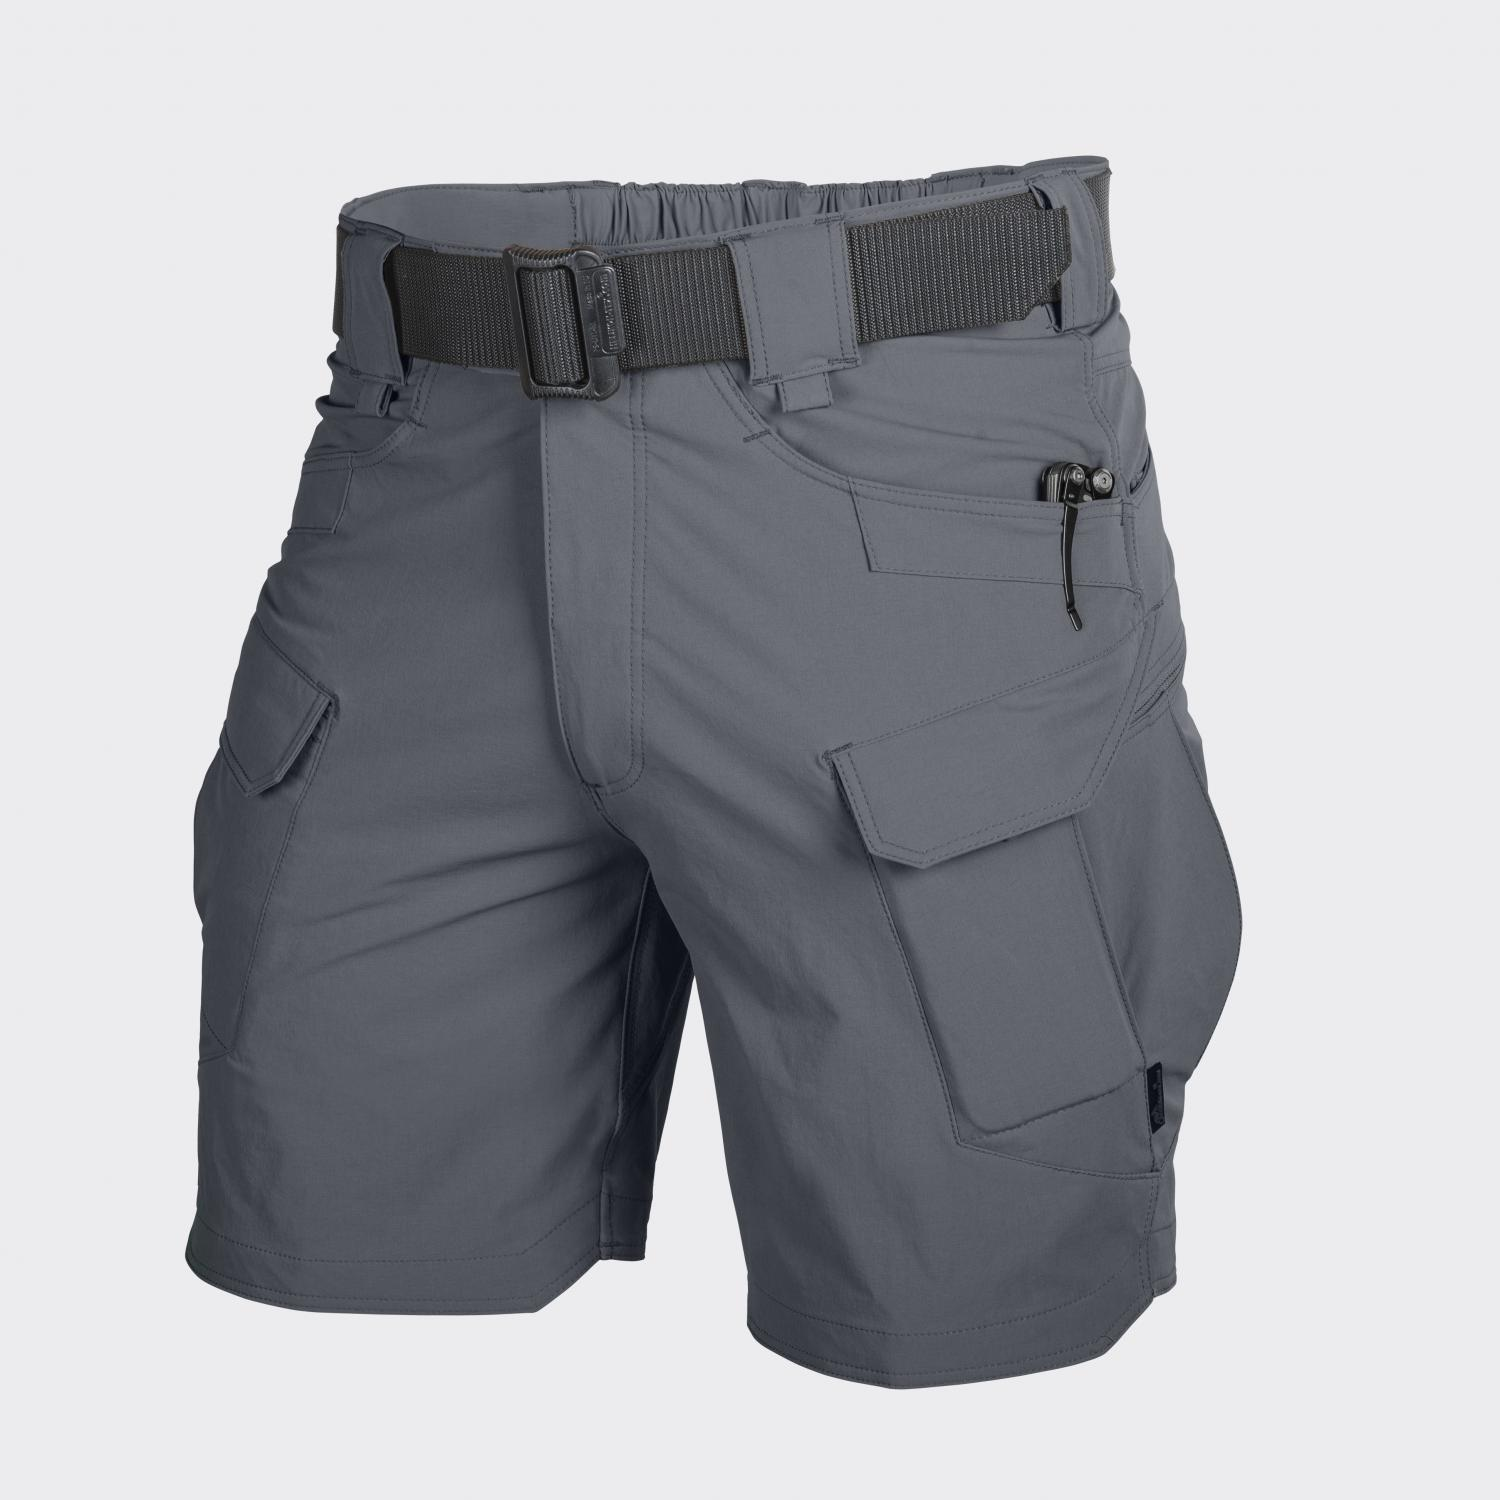 OUTDOOR TACTICAL SHORTS 8.5, Nylon, Shadow Grey